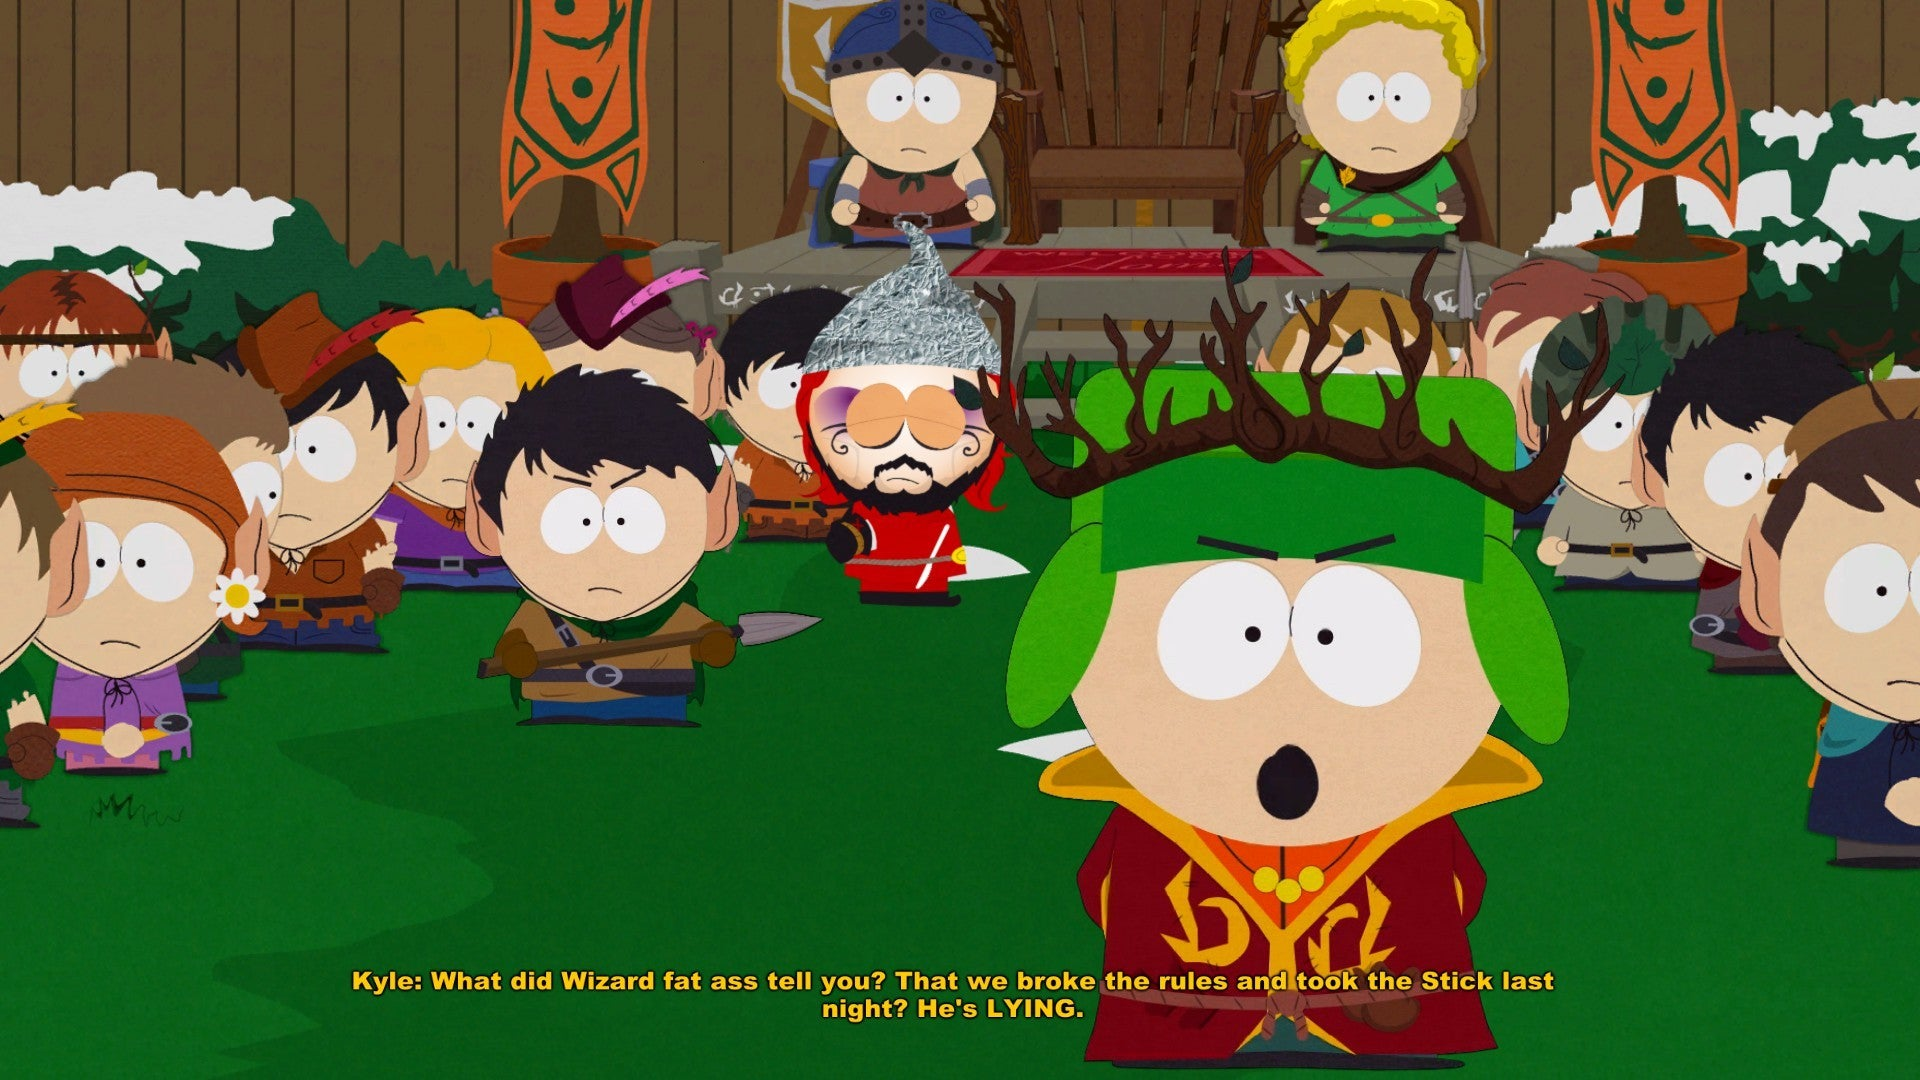 War Quote Wallpaper Hd South Park The Stick Of Truth Review A True South Park